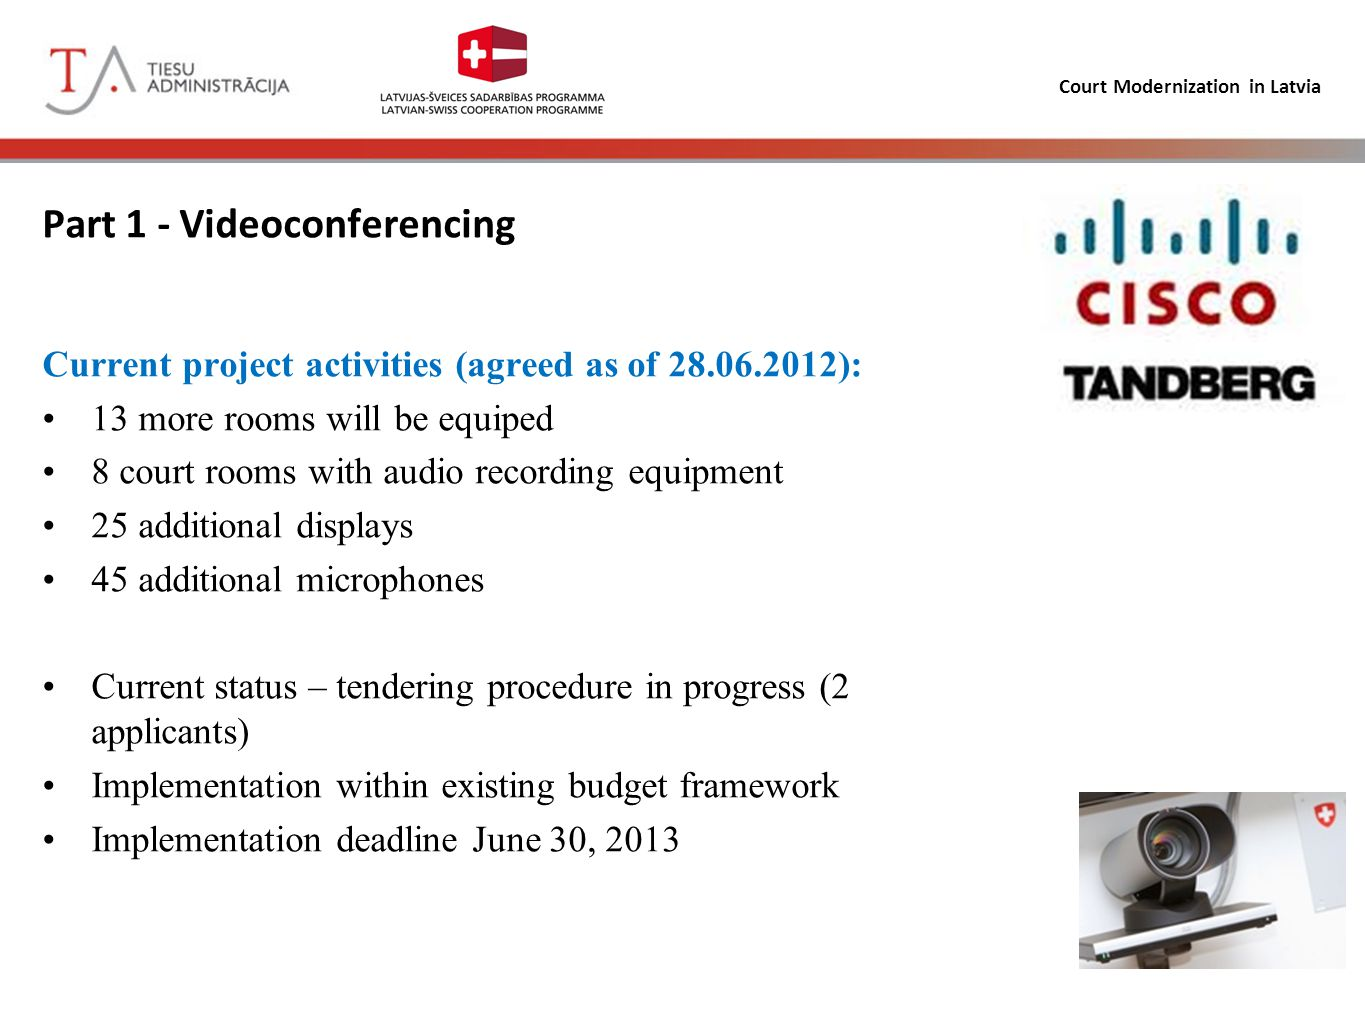 Court Modernization in Latvia Part 1 - Videoconferencing Project status (agreed as of 28.06.2012): March 31, 2013 – Number of videoconferences: =1757 January 1, 2013 – Number of audio recordings: > 5000 Implementation extension needed – December 31, 2013 –Additional controls for tendering process for all tenders, –New Court-house building, –Thorough assessment of requirements for additional displays and microphones (as noted by EU technical experts to implement «True-To-Life») done, –Additional on-going end-user support in progress, lessons learnt and development of hands-on use procedures, –Cooperation with Baltic partners.